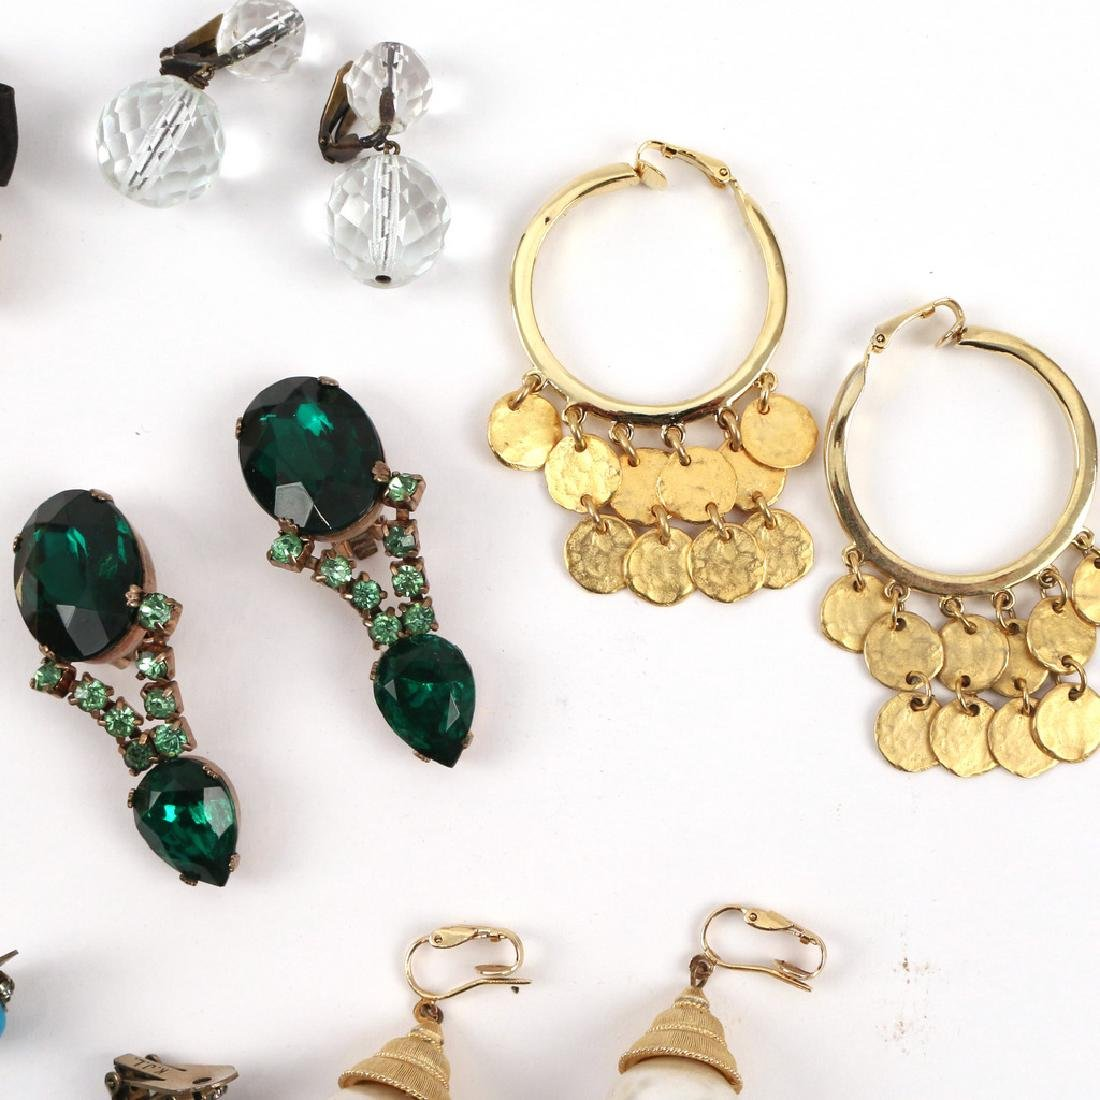 (30pc) MISC. COSTUME DROP & OTHER EARRINGS - 4